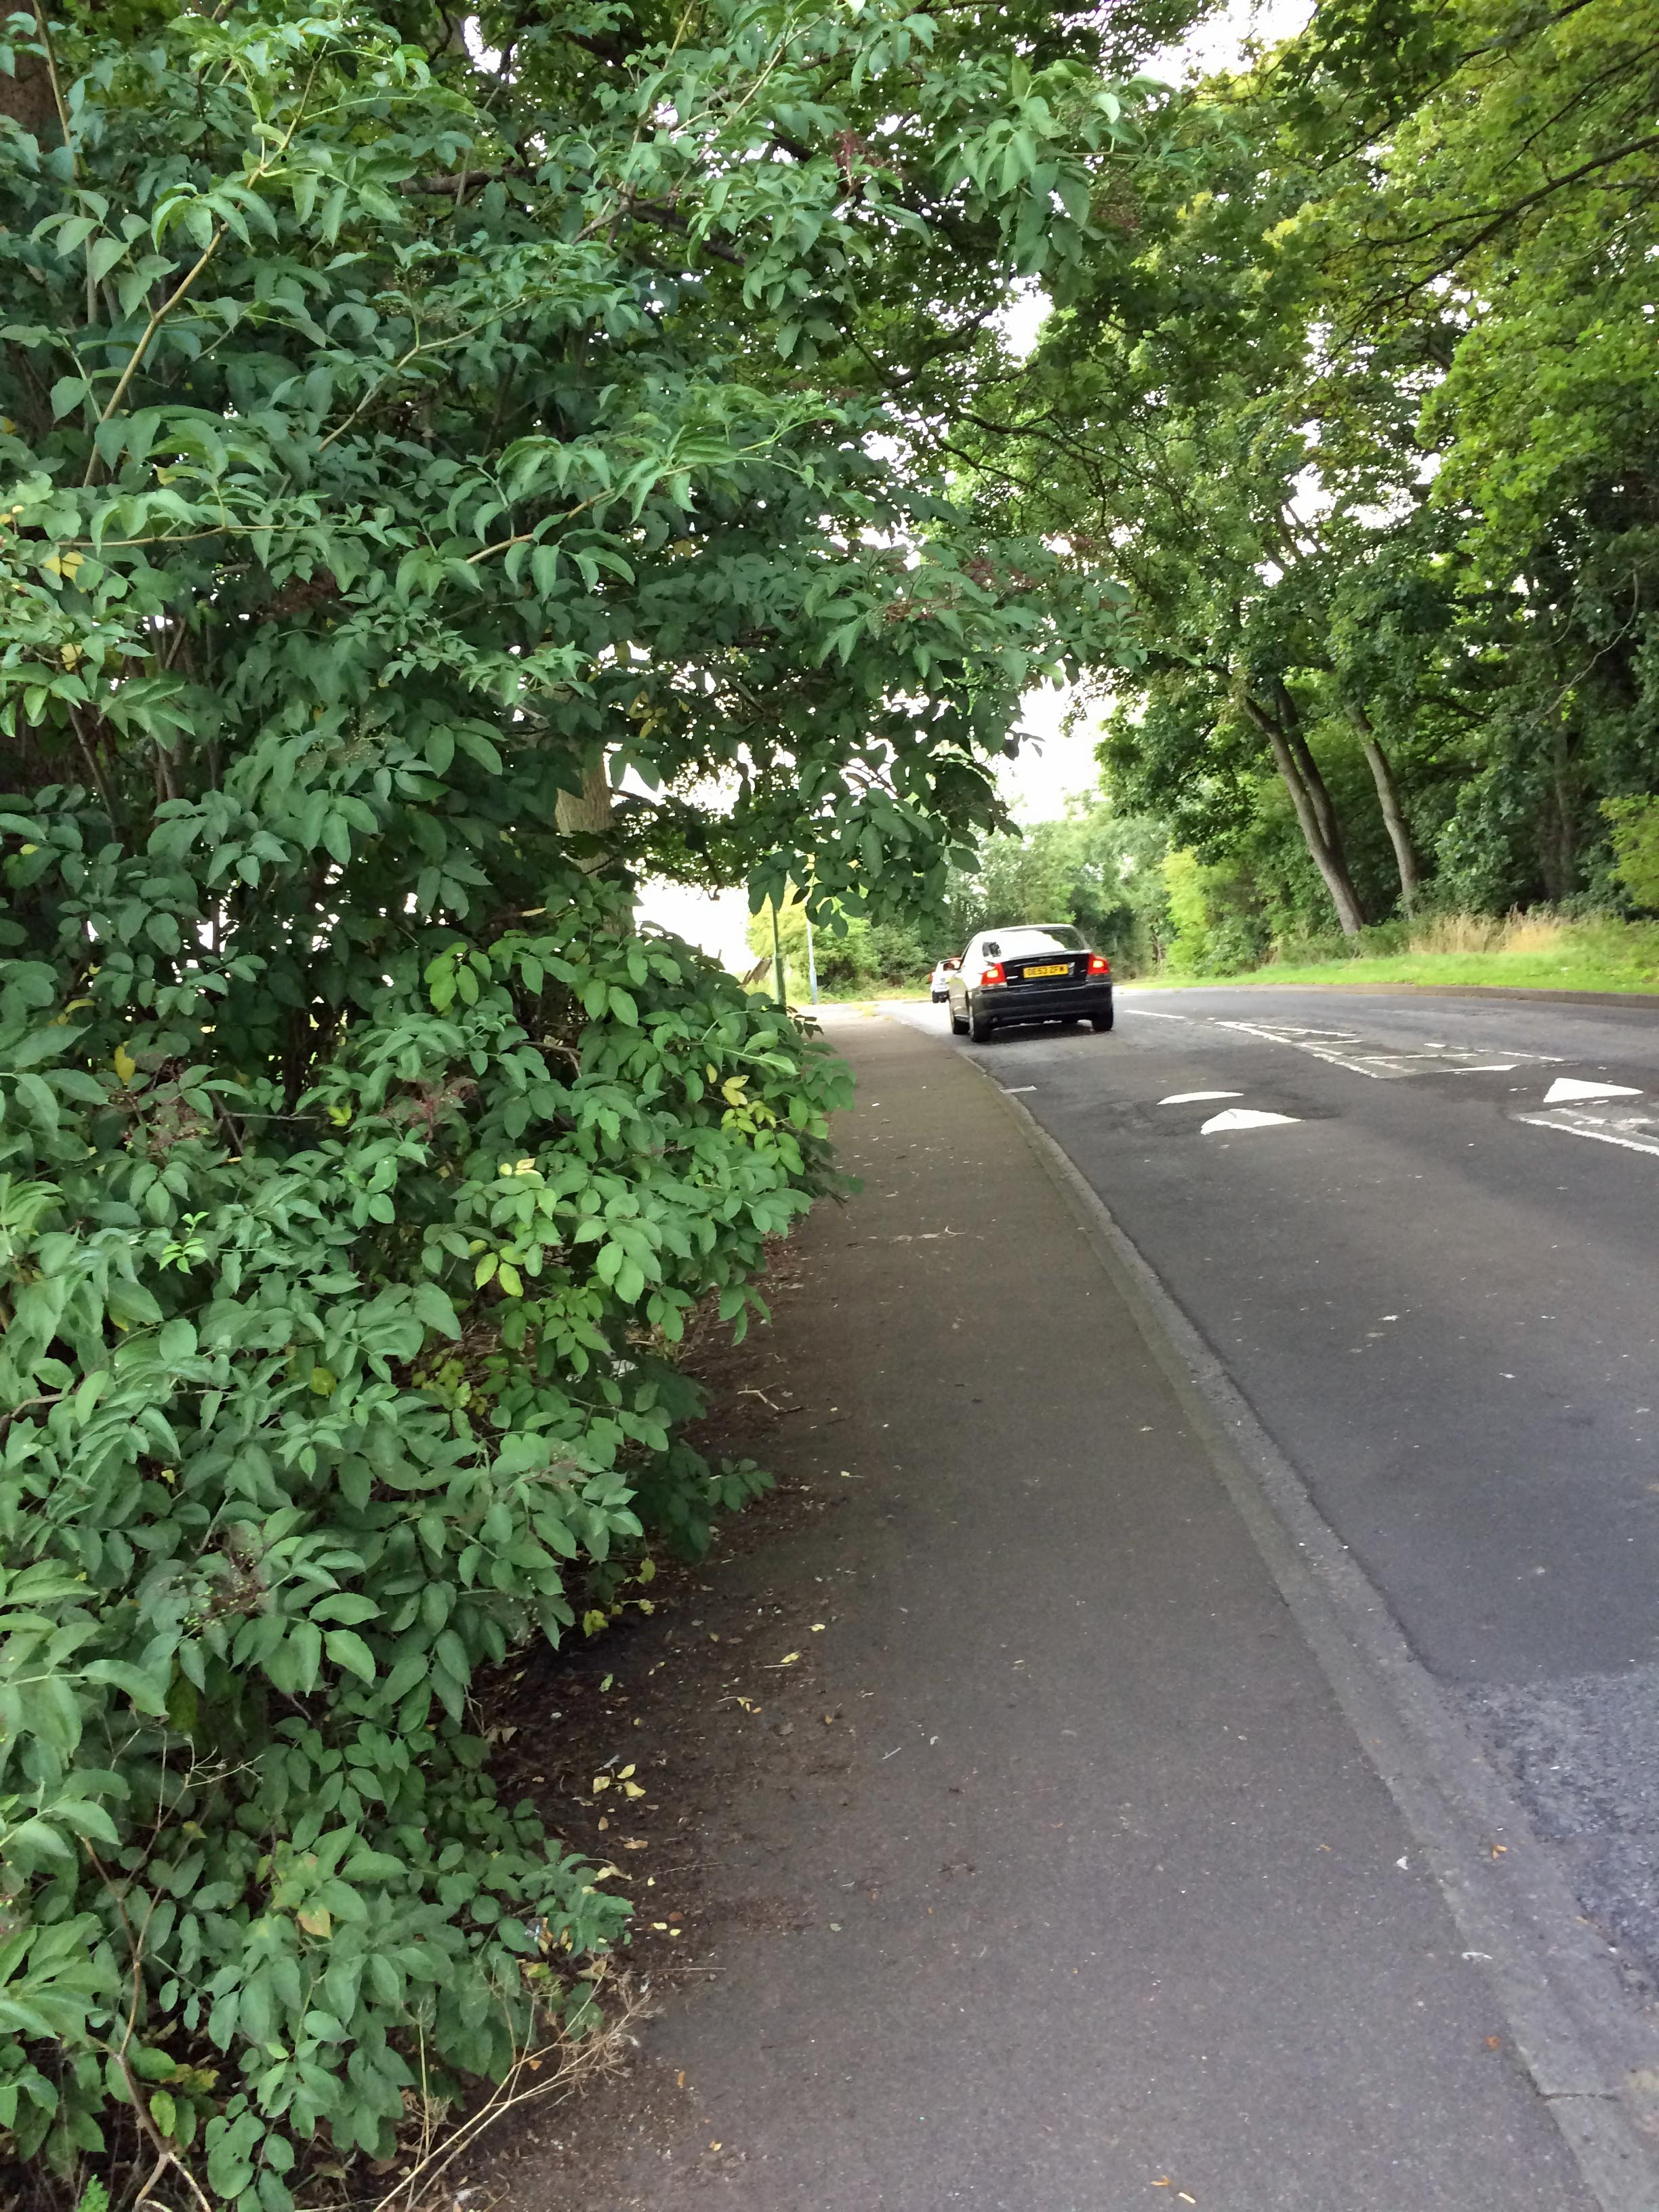 Bushes blocking the public footpath also on Foxwood Lane